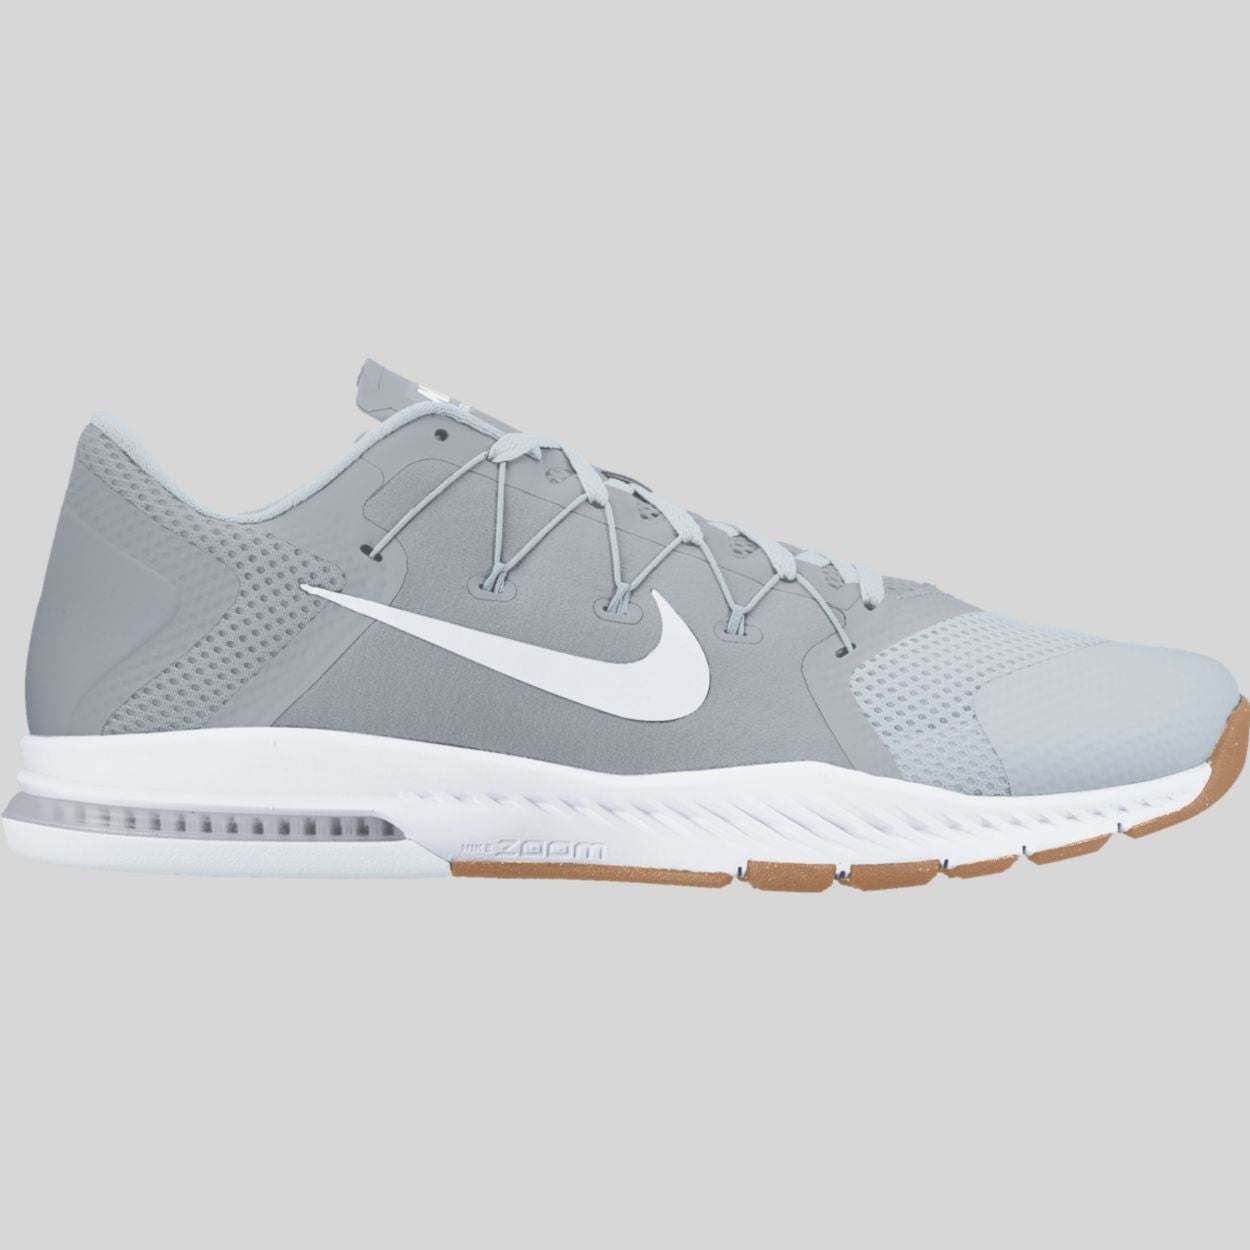 Nike Zoom Train Complete Wolf Grey White Pure Platinum (882119-005)